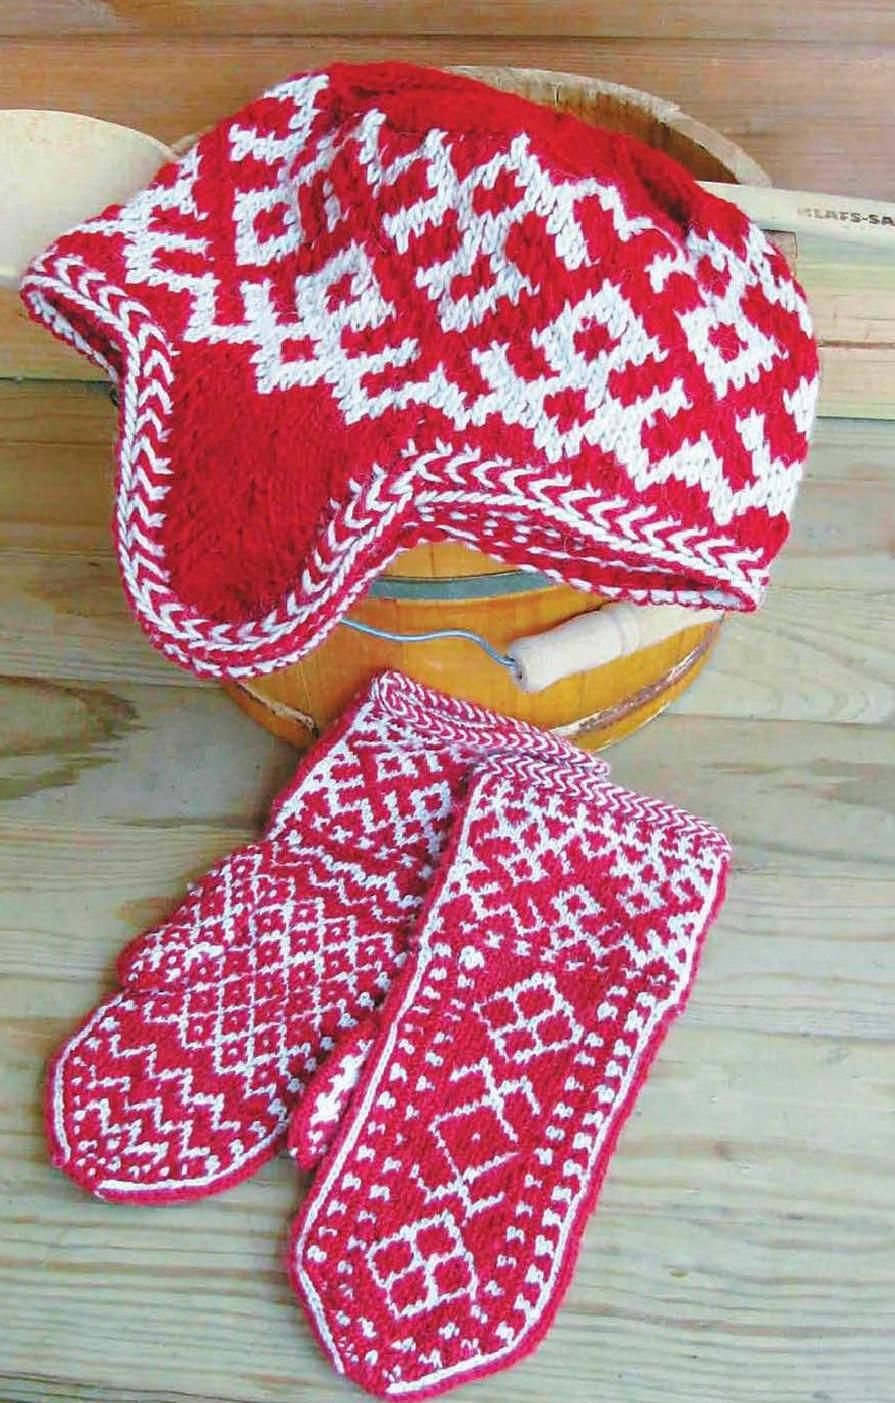 #ClippedOnIssuu from Knitting hats and mittens from around the world